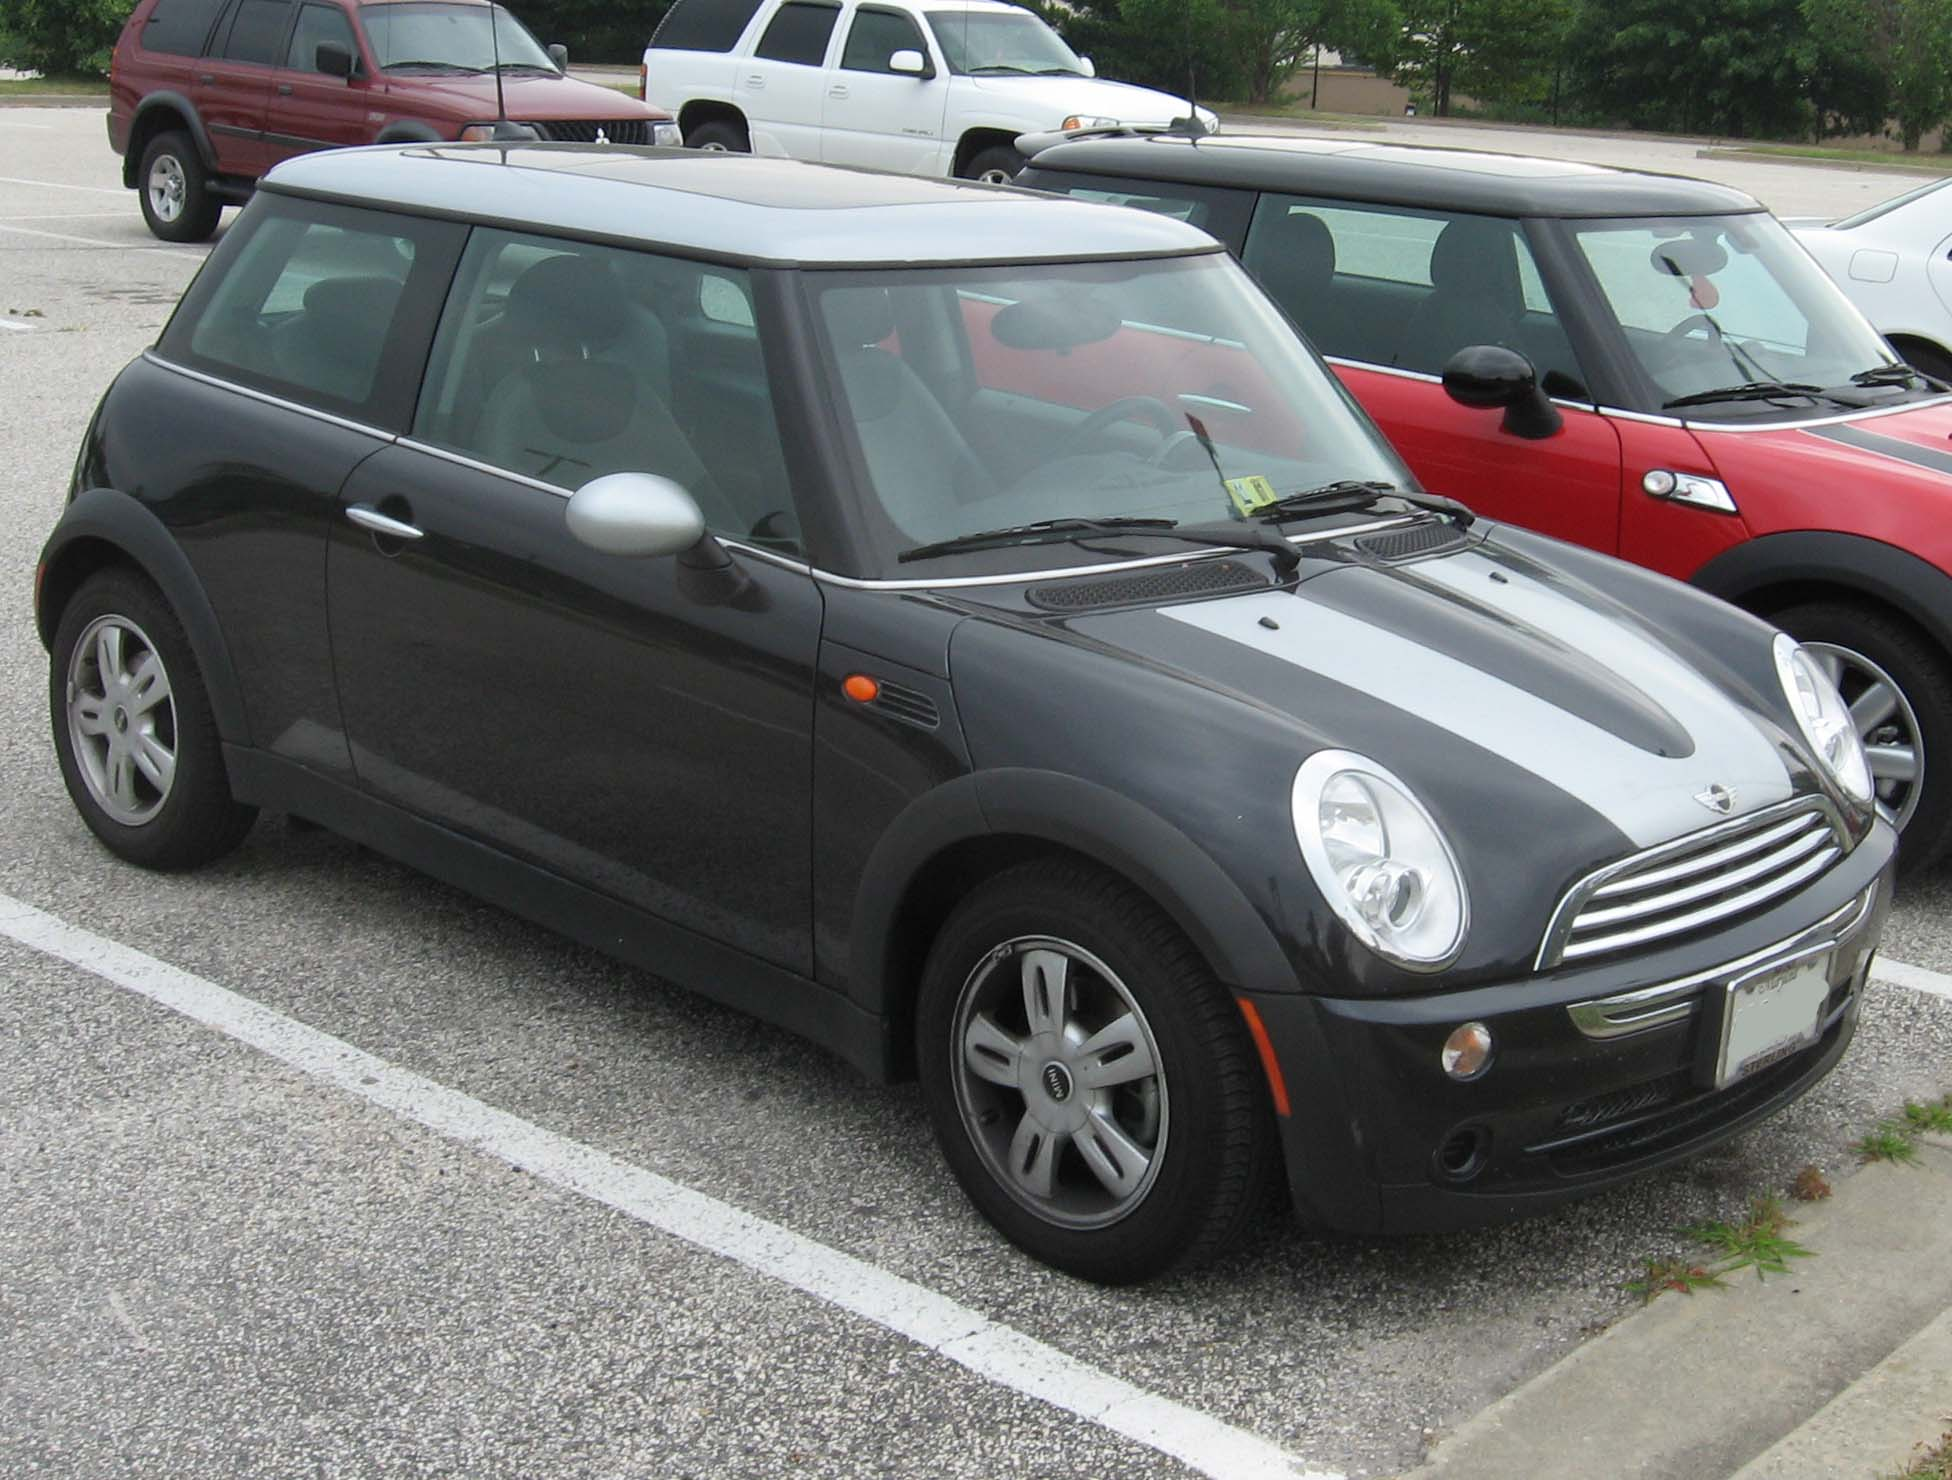 2002 mini cooper information and photos zombiedrive. Black Bedroom Furniture Sets. Home Design Ideas